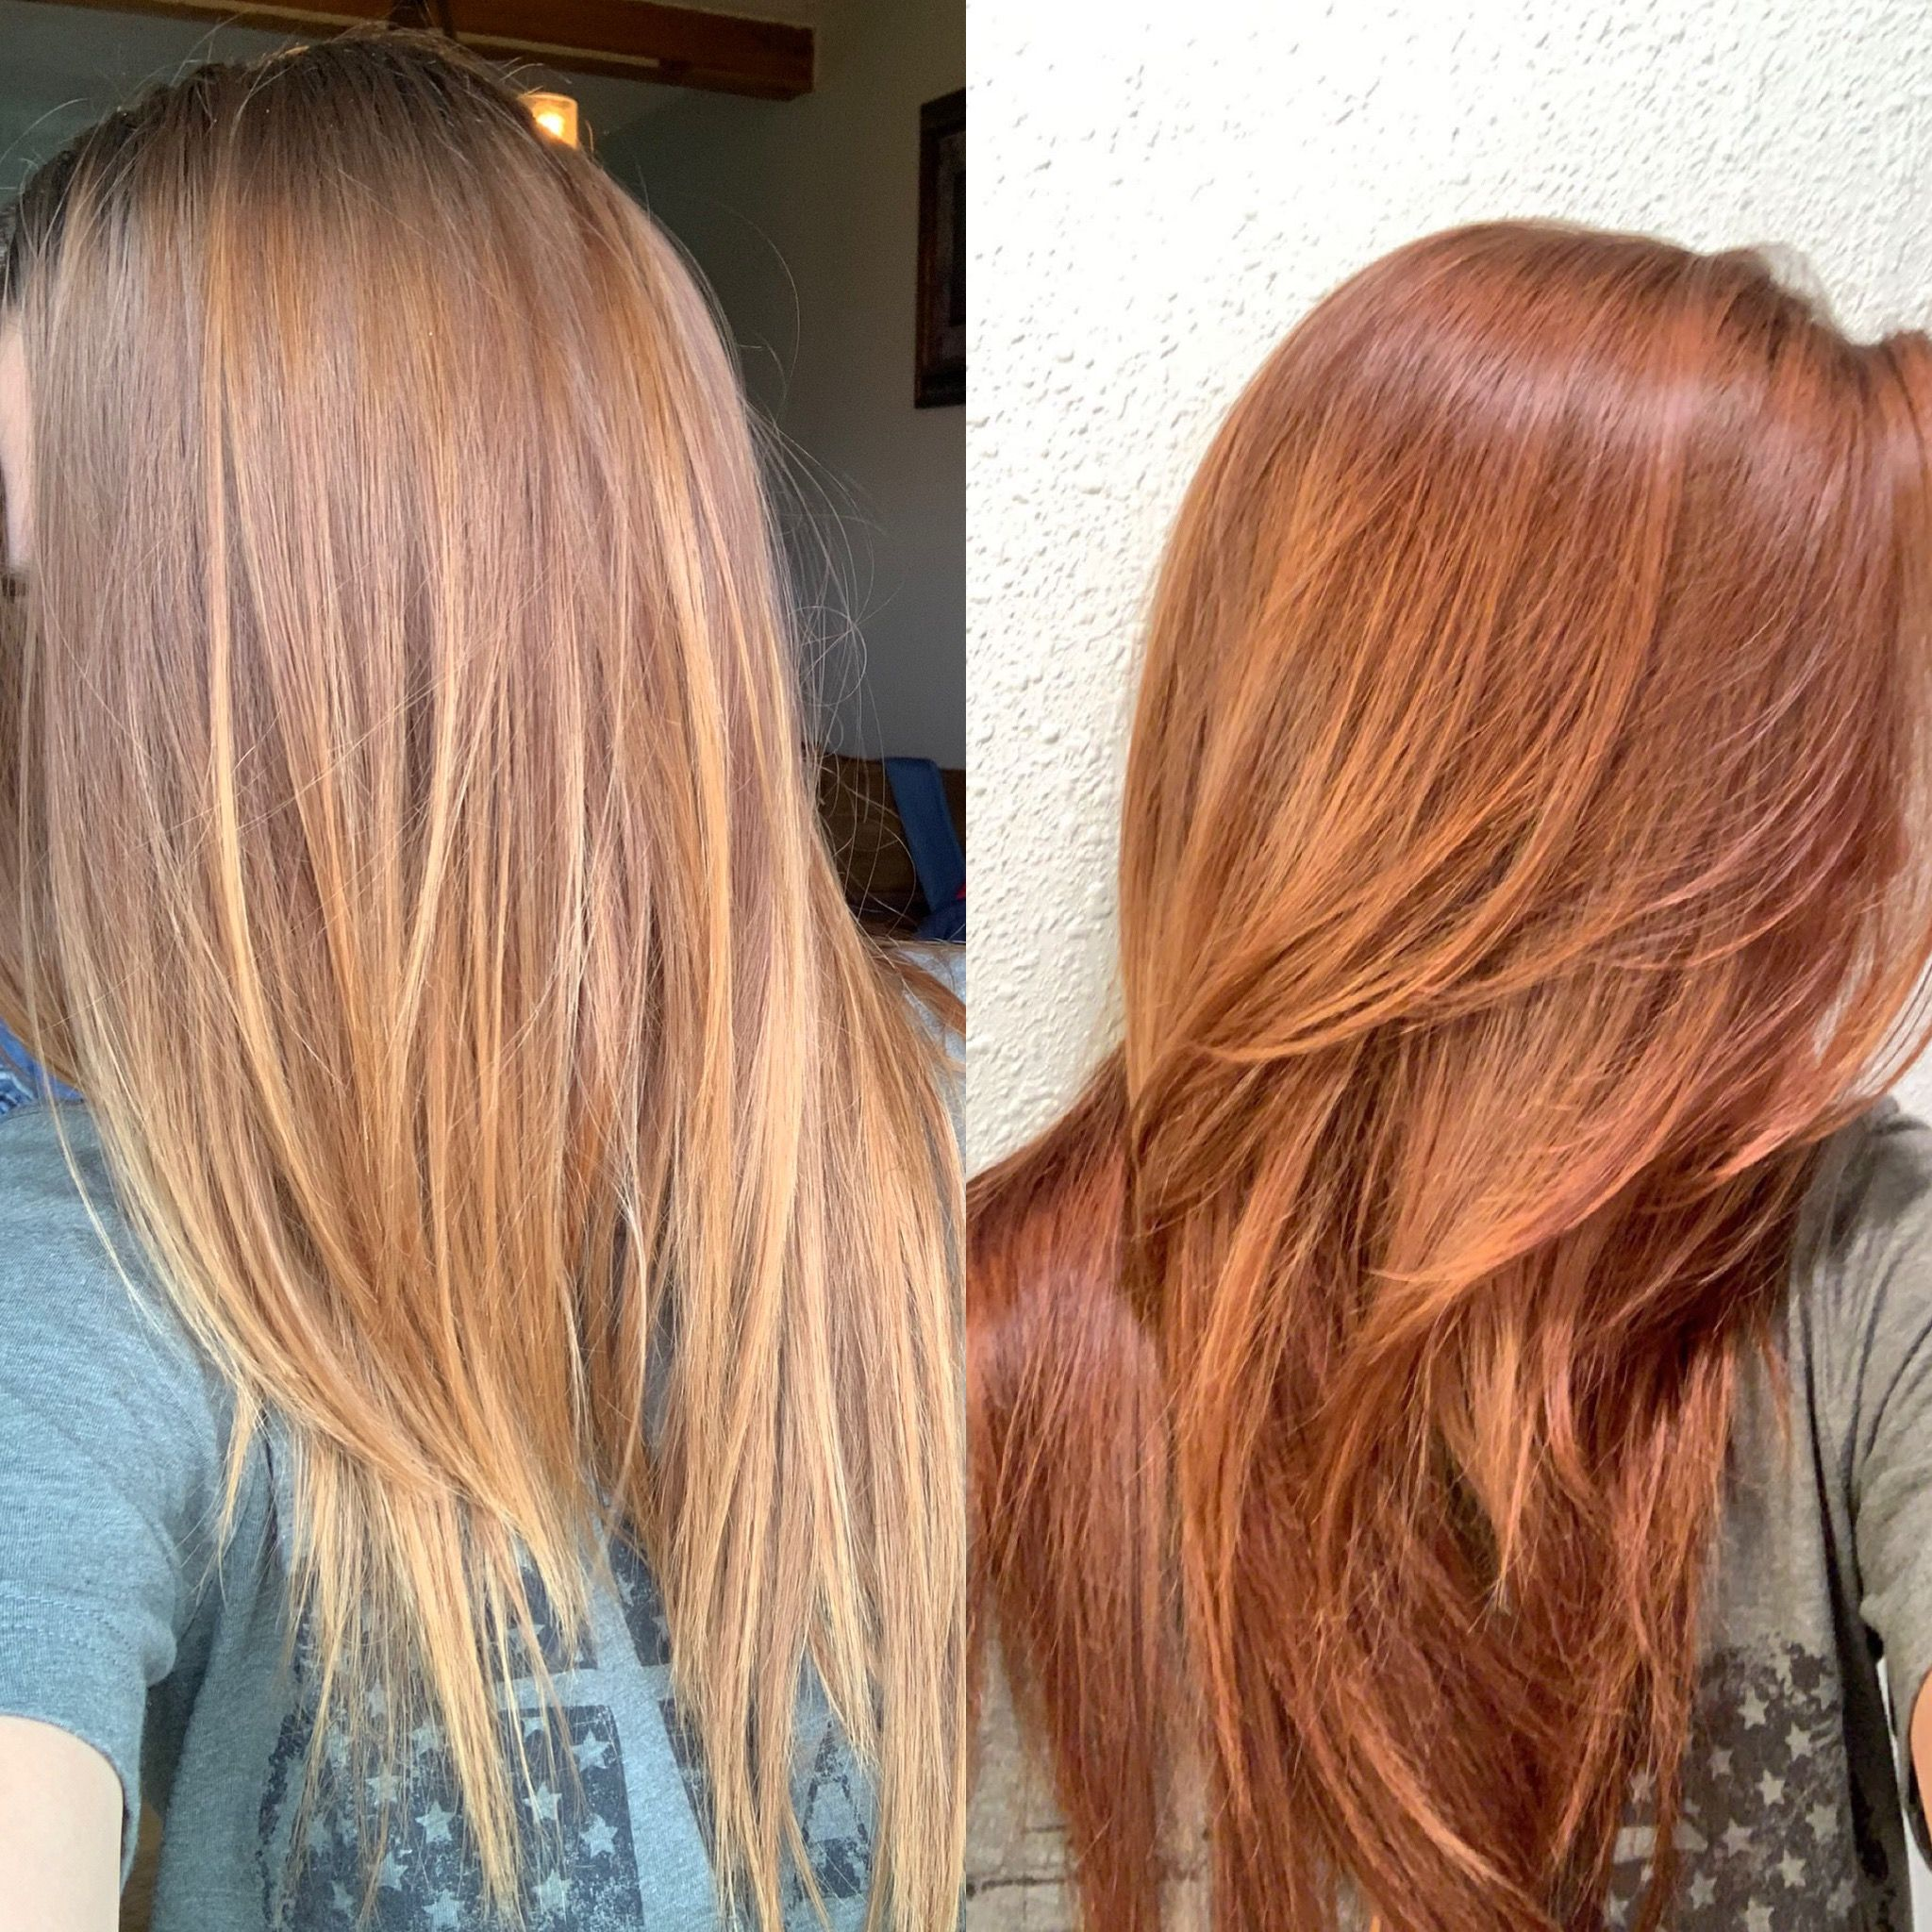 Redken Shades Eq Before After Copper Red 1oz Redken Shades Eq Cream 07gc 1oz 07g 1oz 06c Used 10 V Red Hair Toner Red Hair Formulas Hair Color Formulas